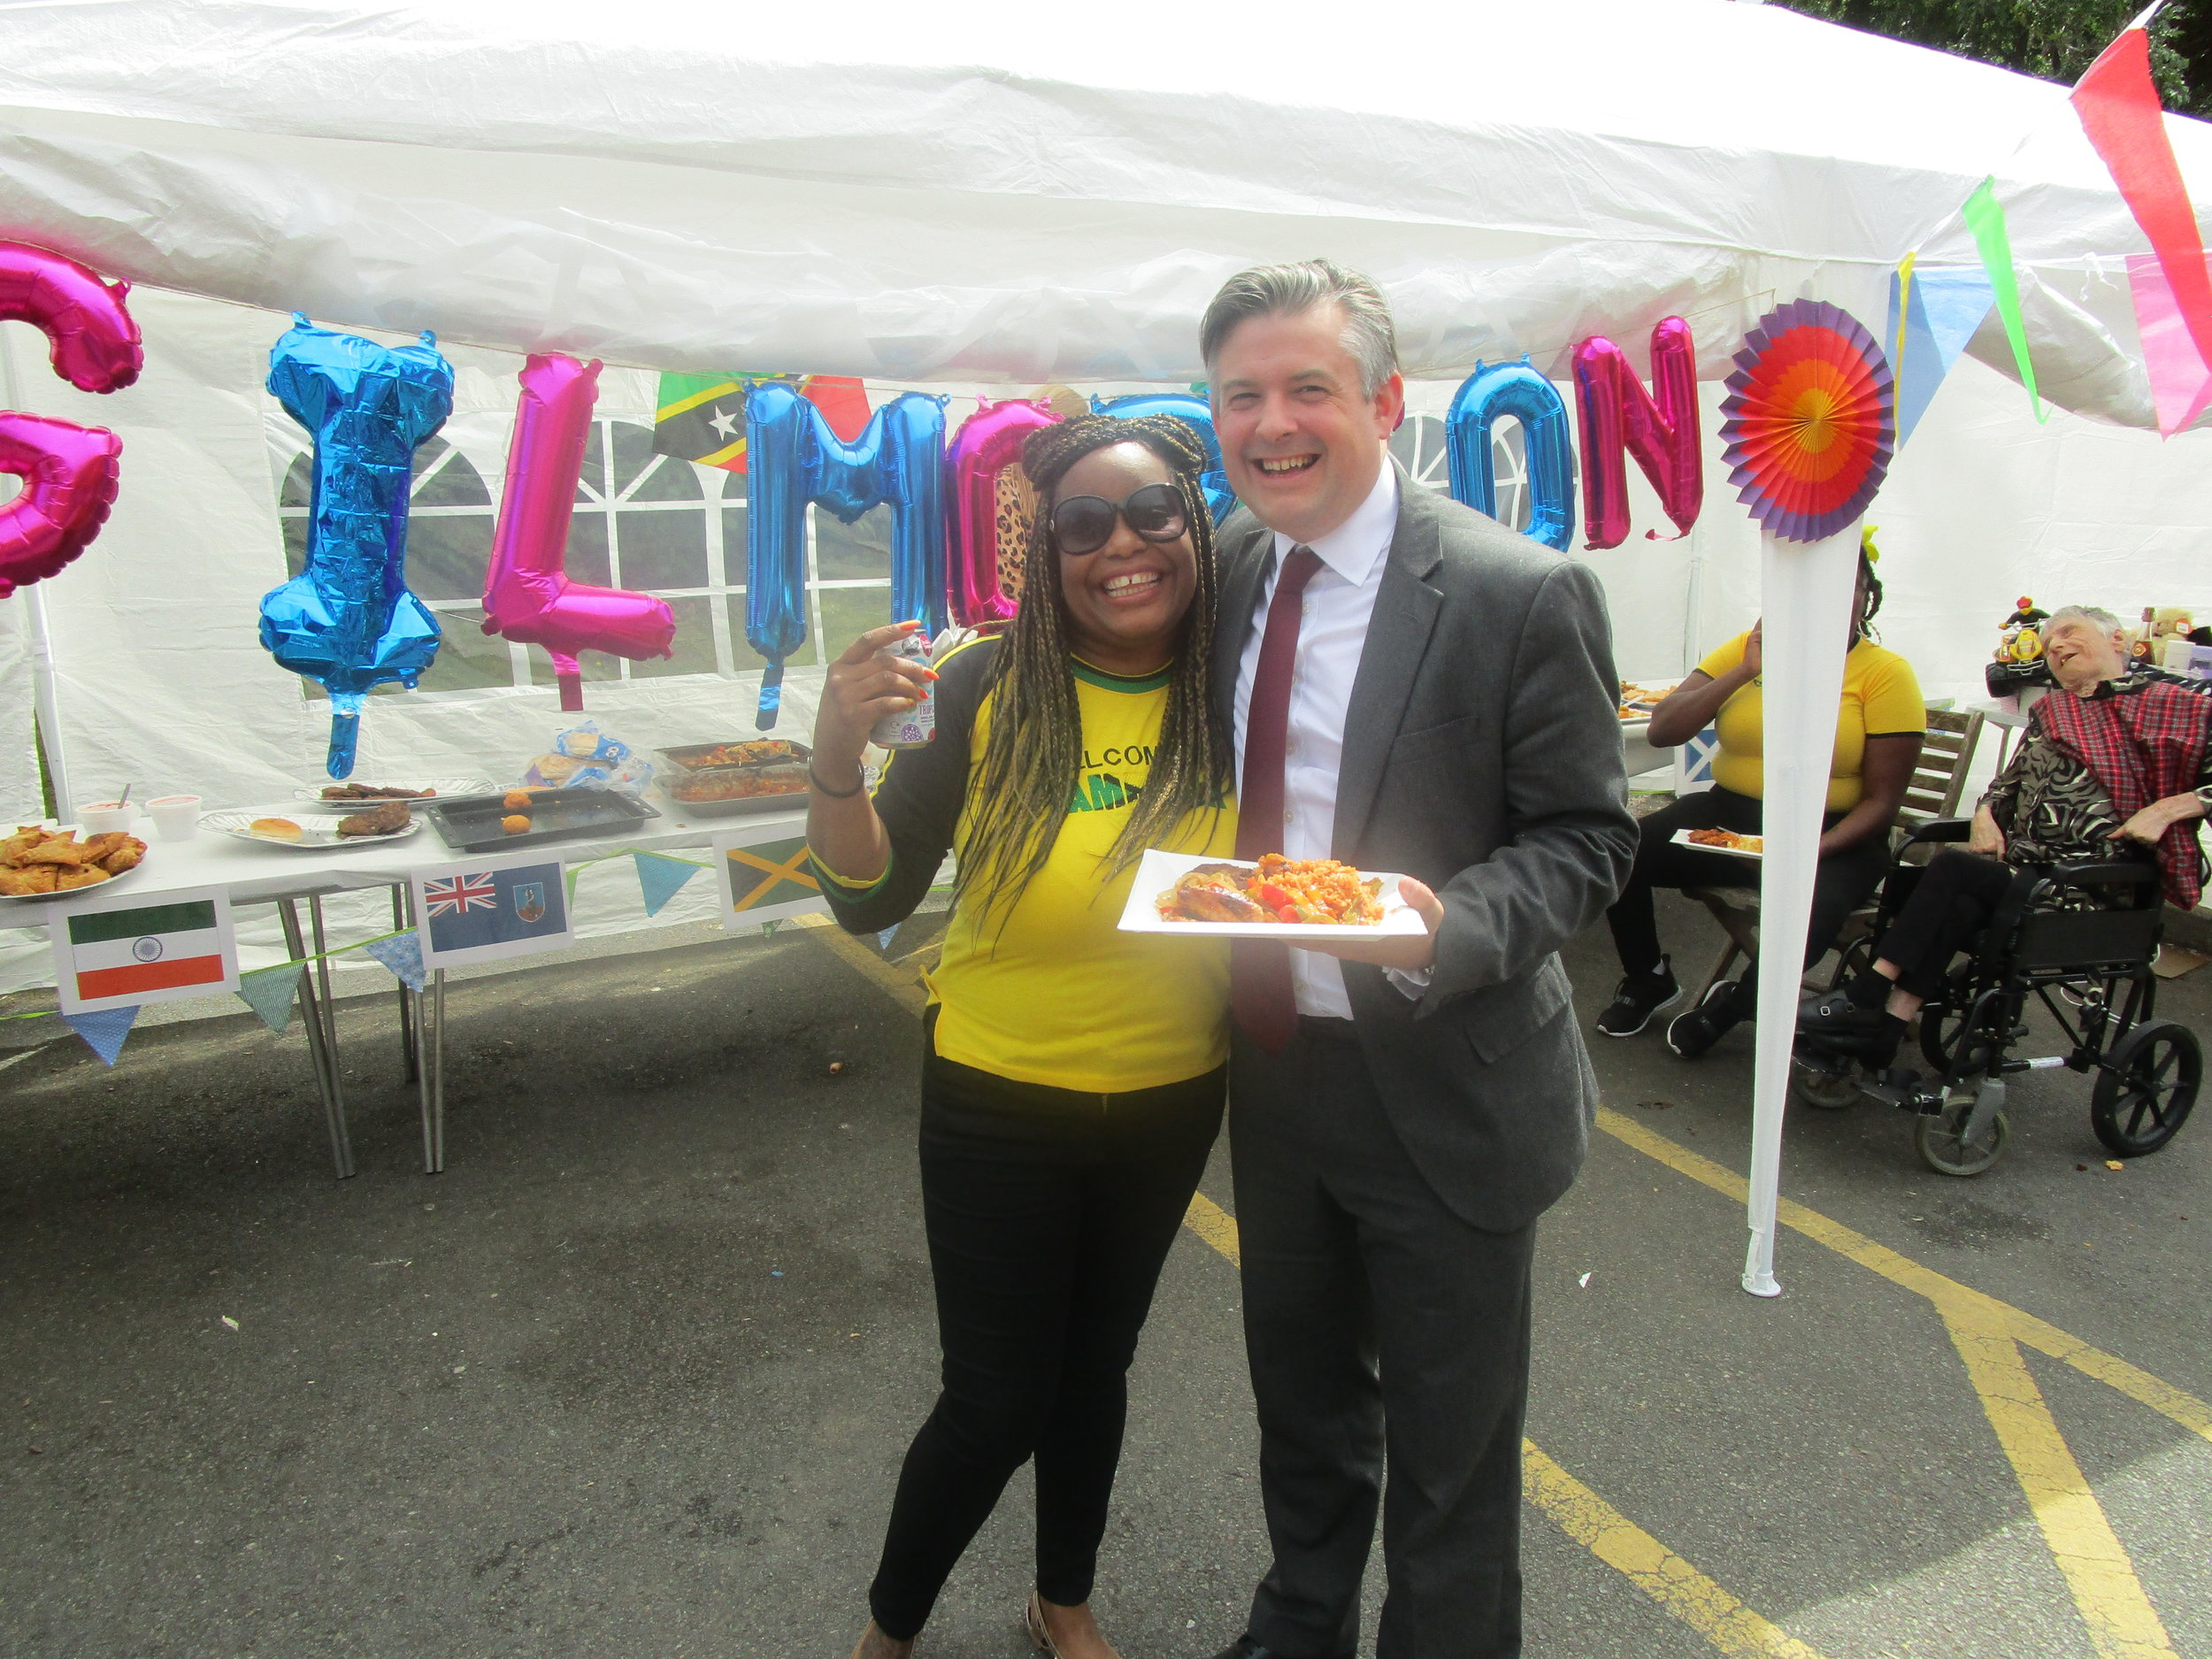 Jon visited a local learning disability service at Gilmorton Flats celebrating National Learning Disability Week with his constituents - Friday June 21 2019